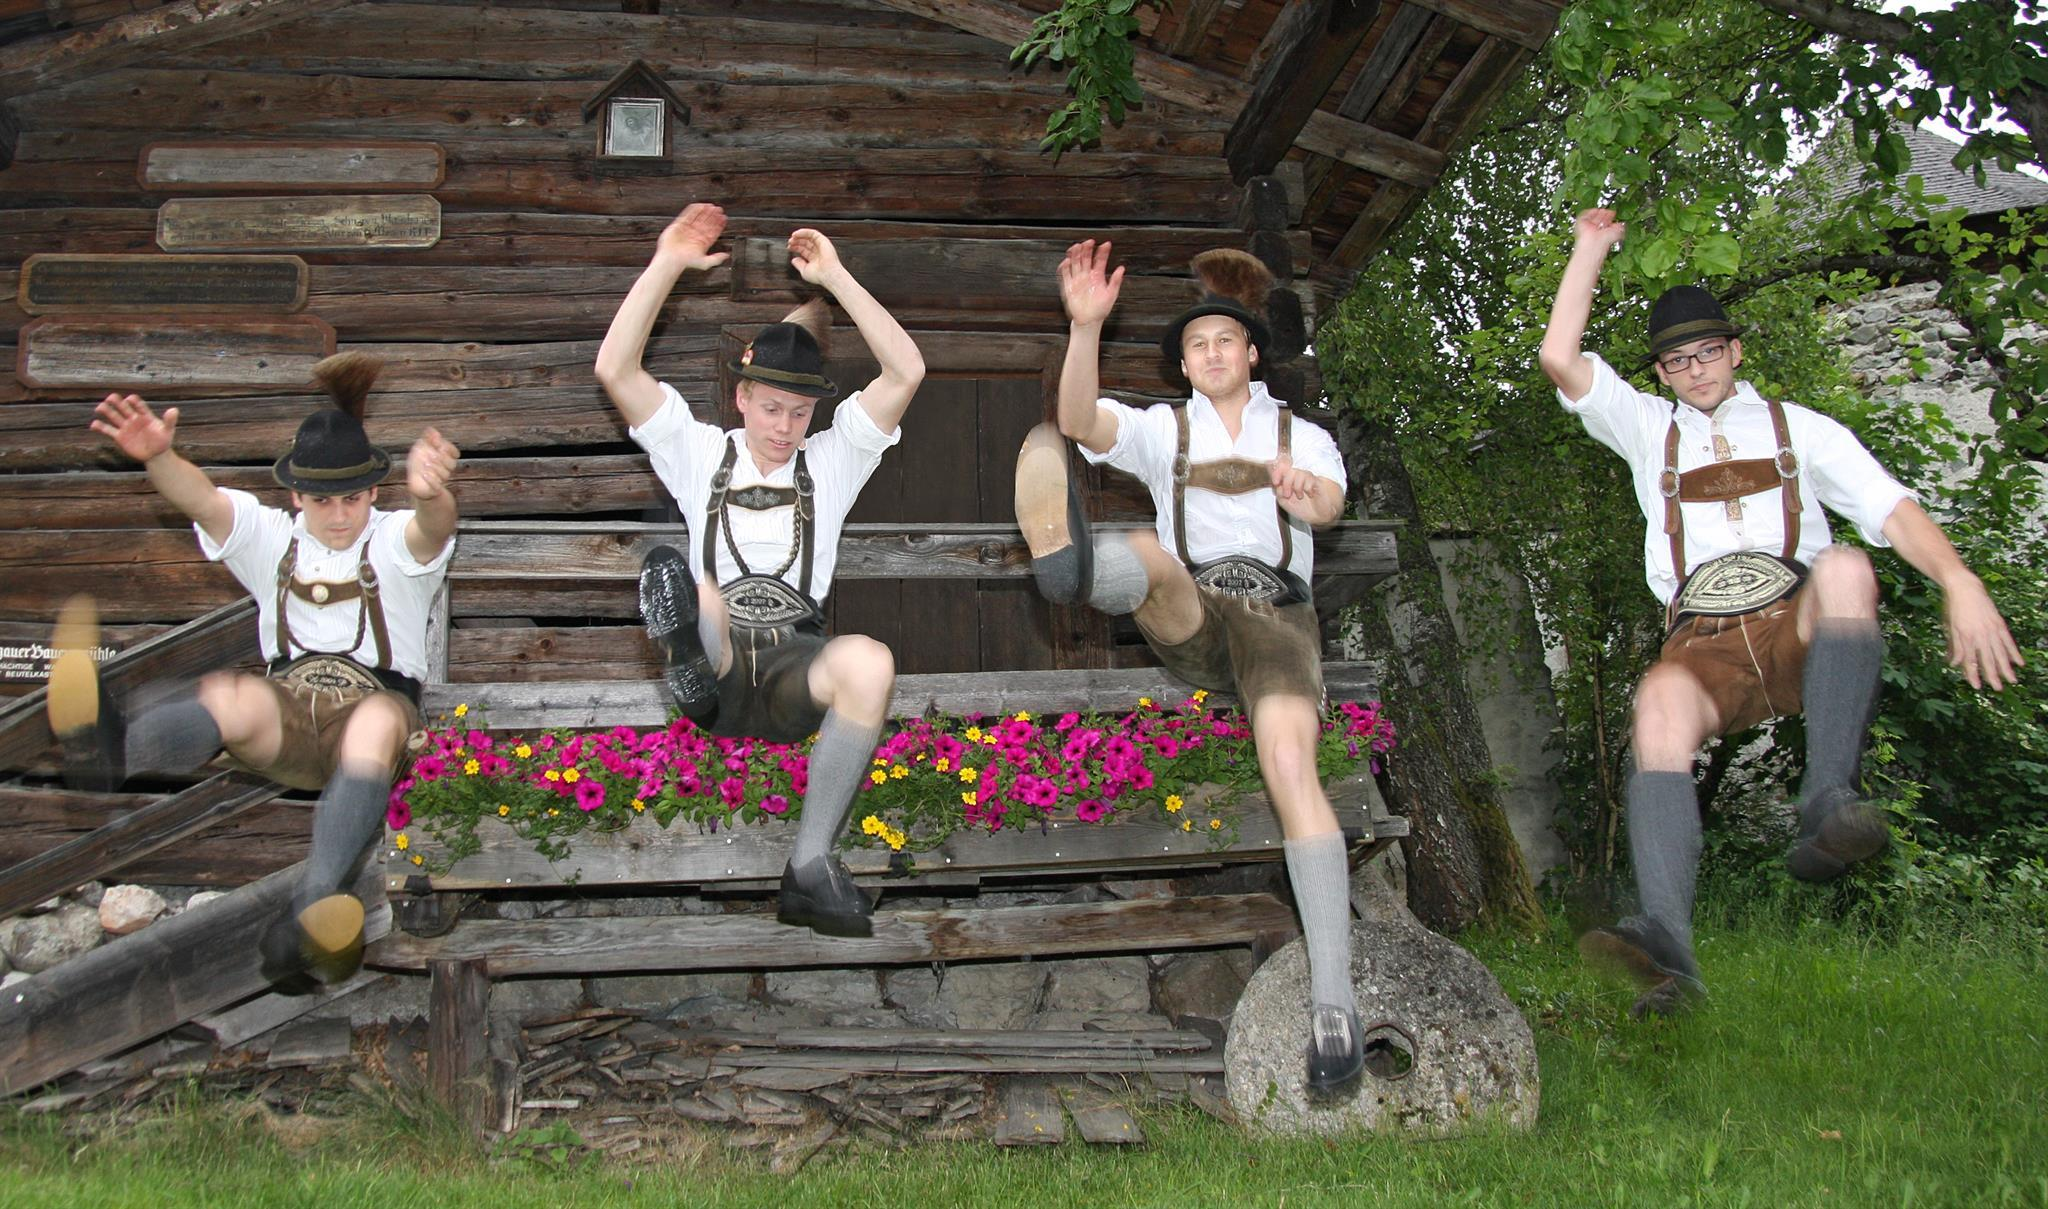 Traditional evening at the castle Kaprun - 11/08/2020, from 8:00 PM